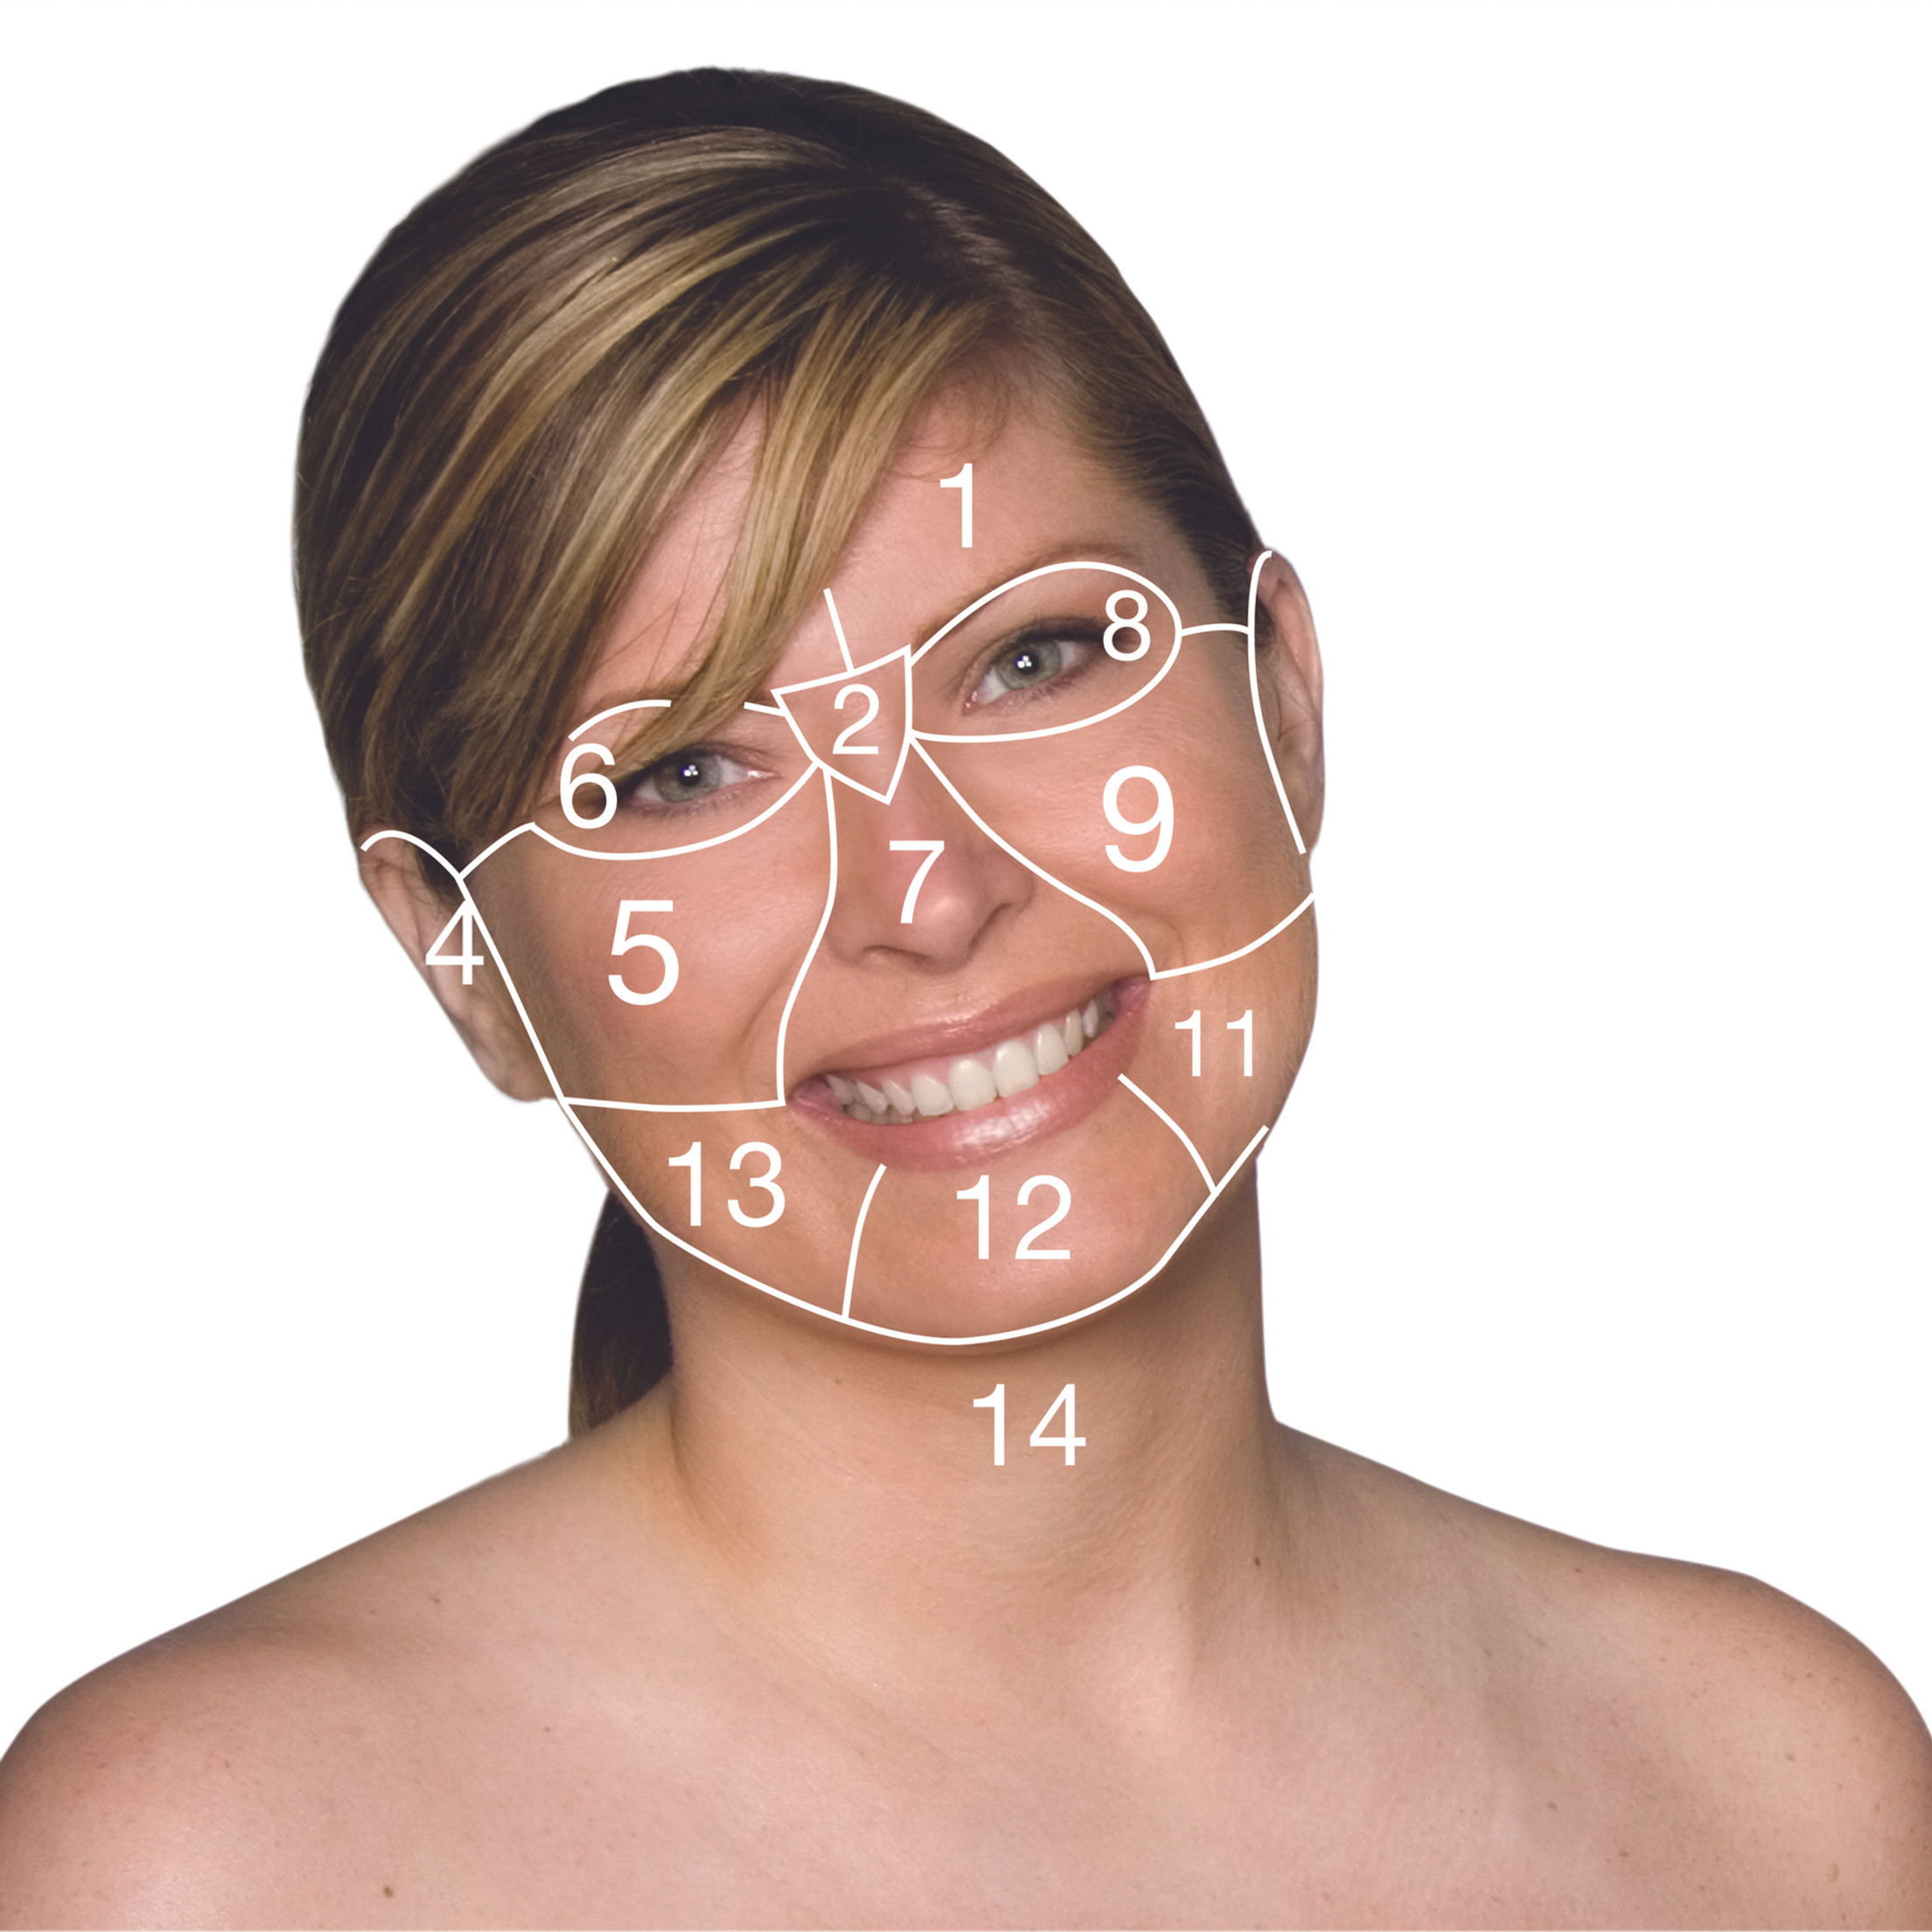 Face Mapping/Consultation